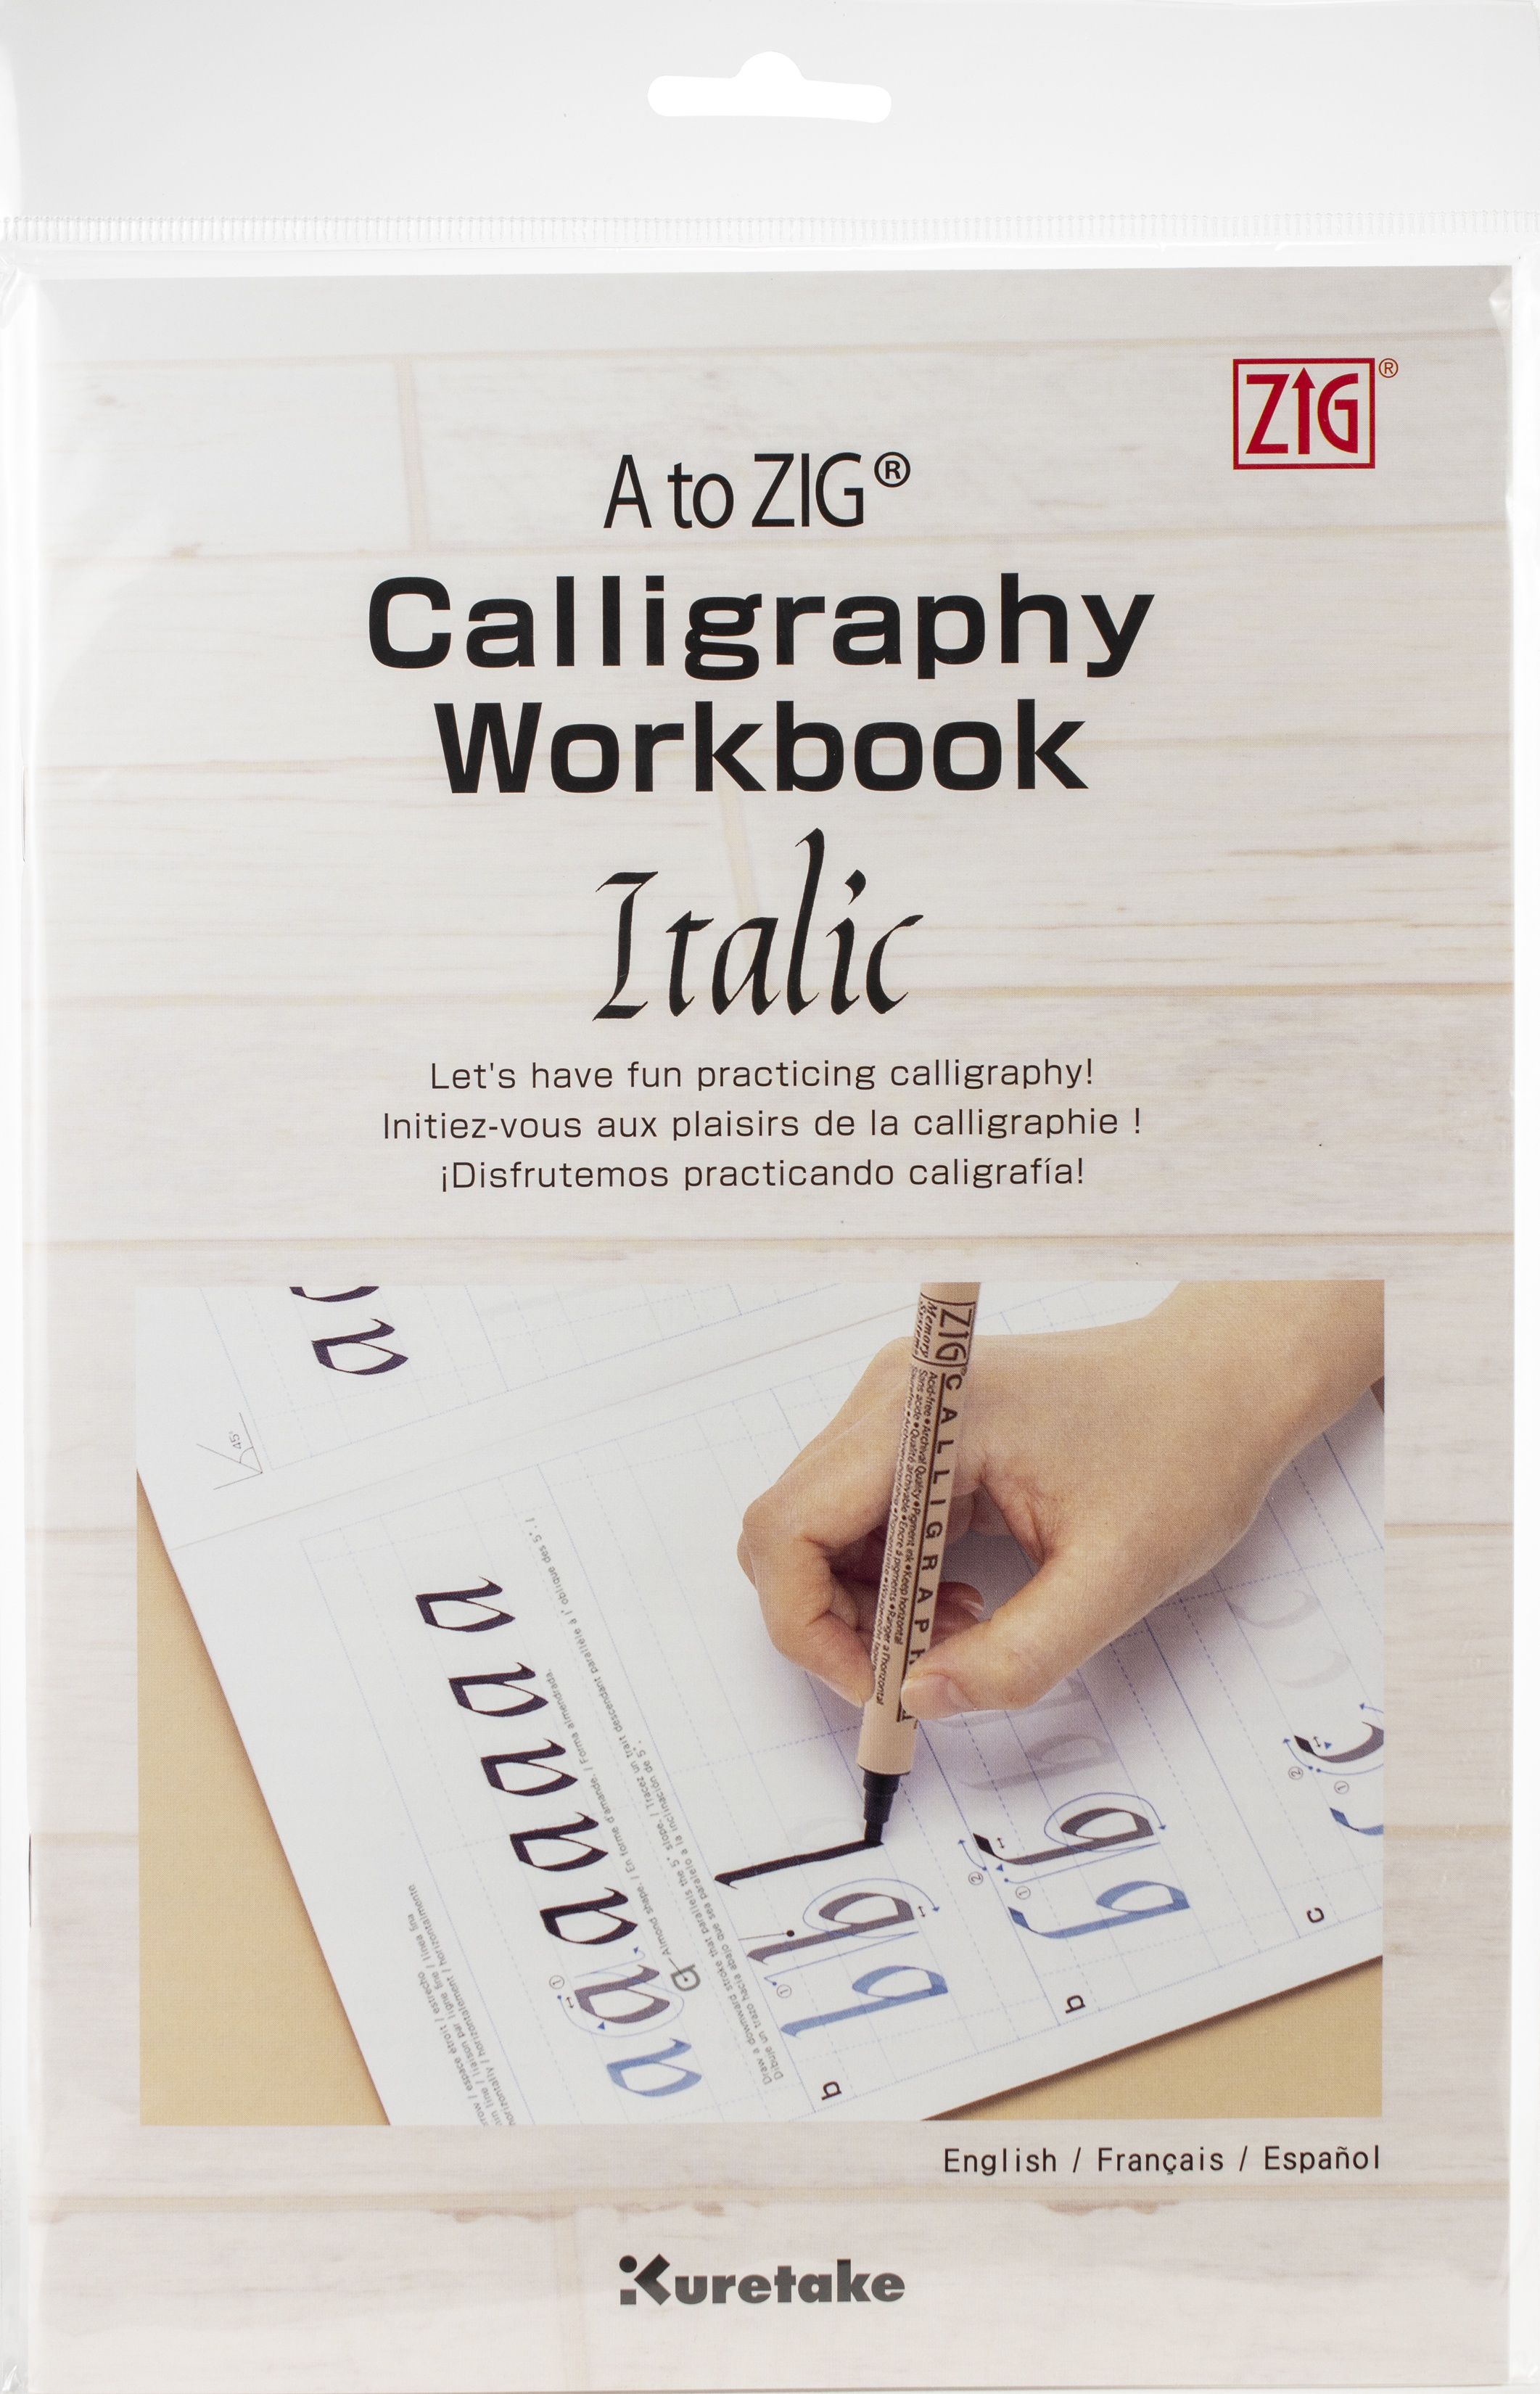 A to ZIG Calligraphy Workbook-Italic-